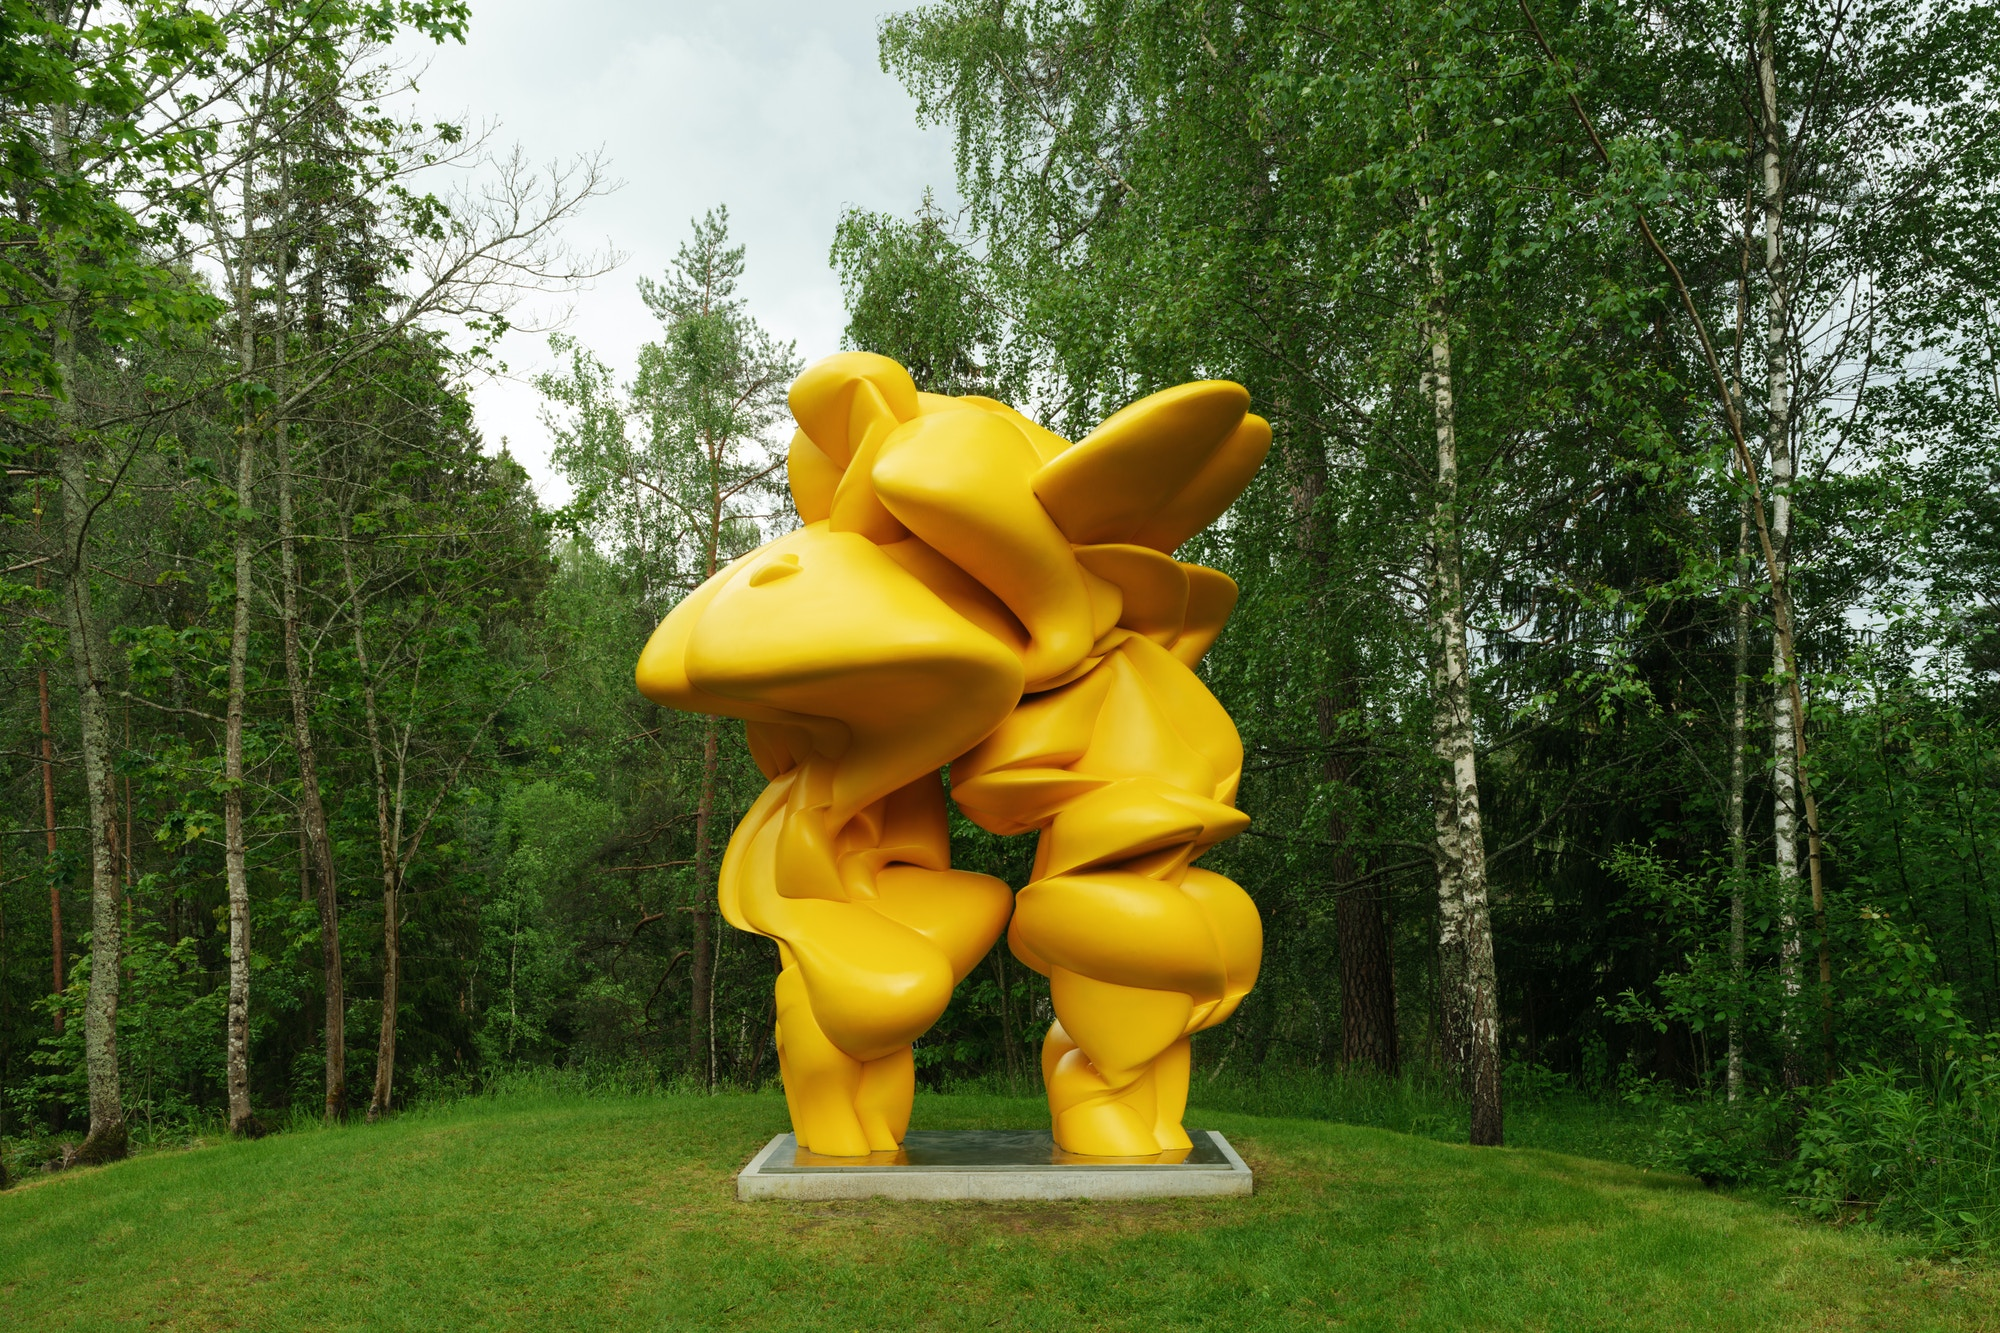 A large yellow sculpture.